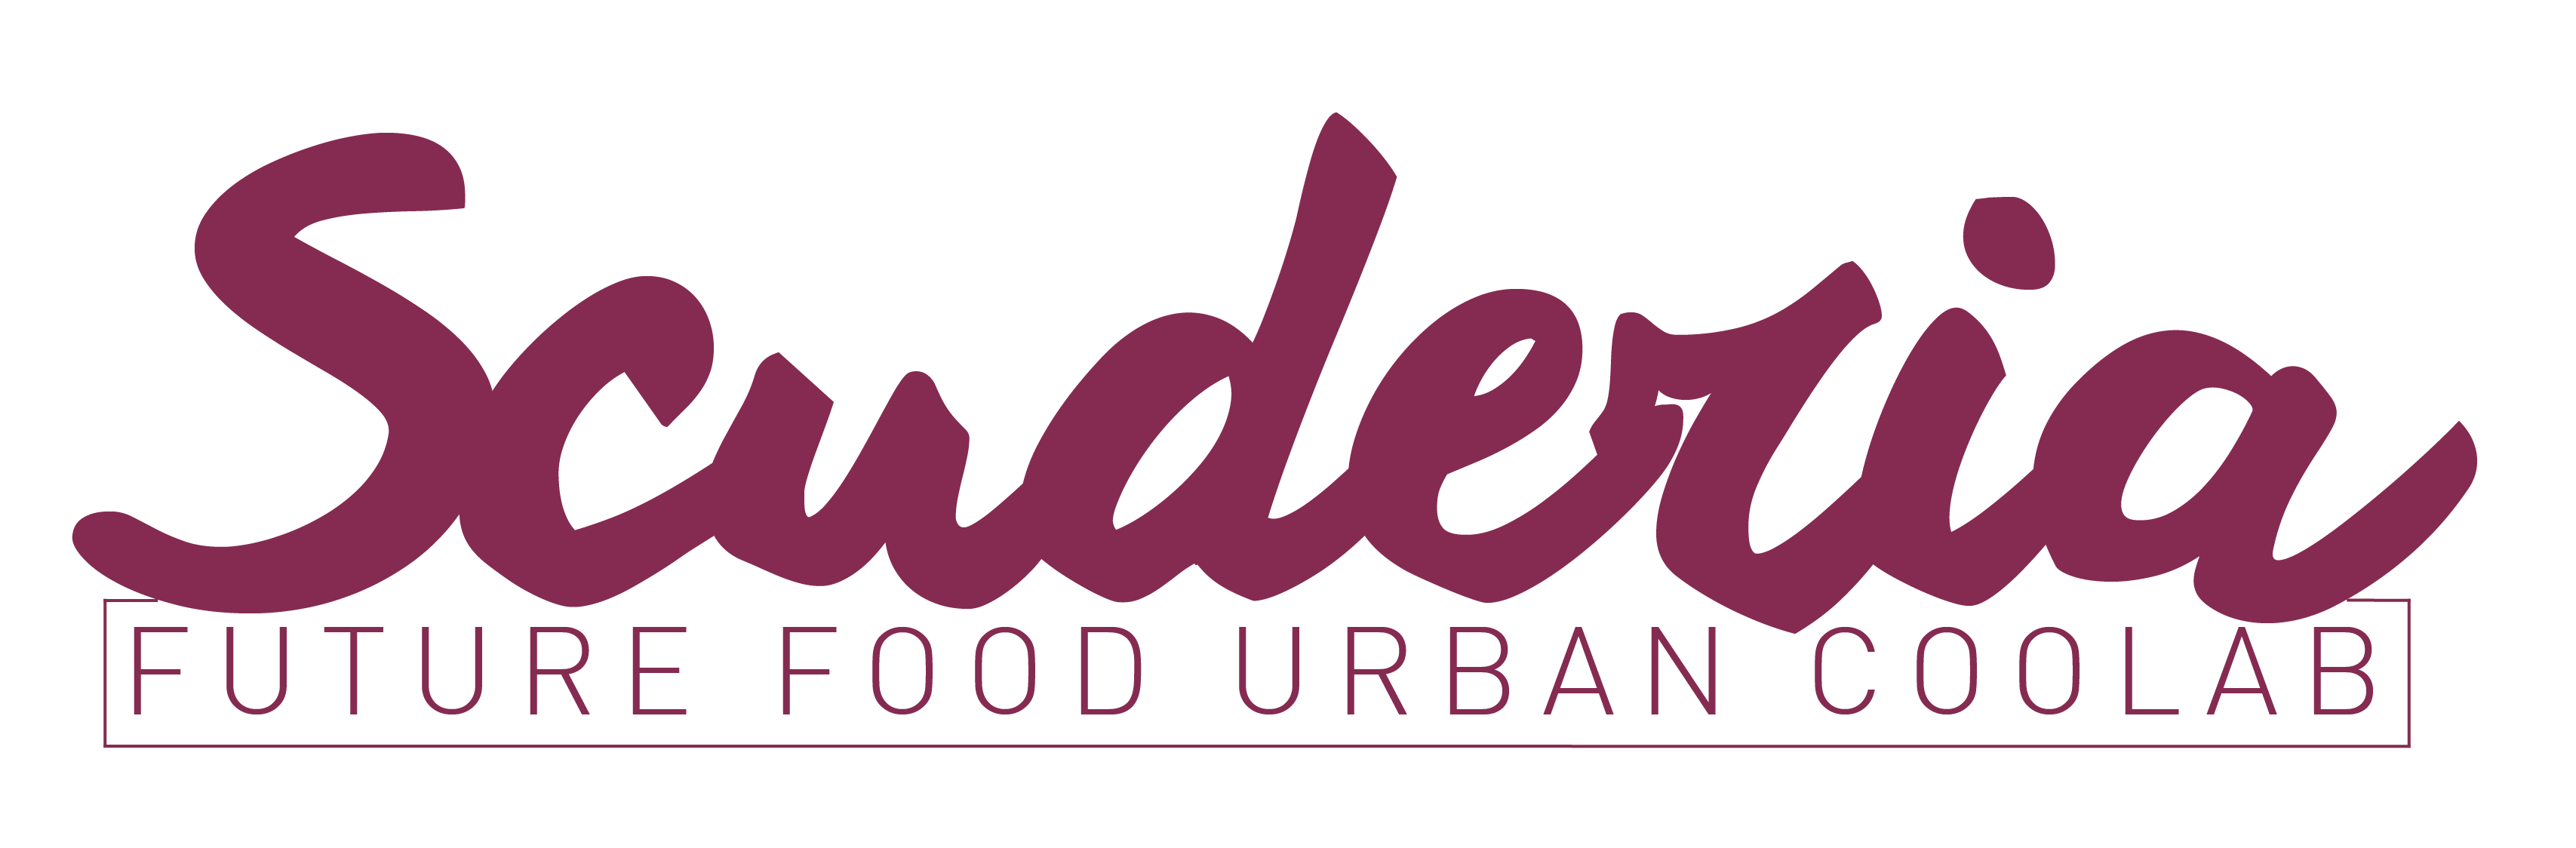 Scuderia | Future Food Urban CooLab